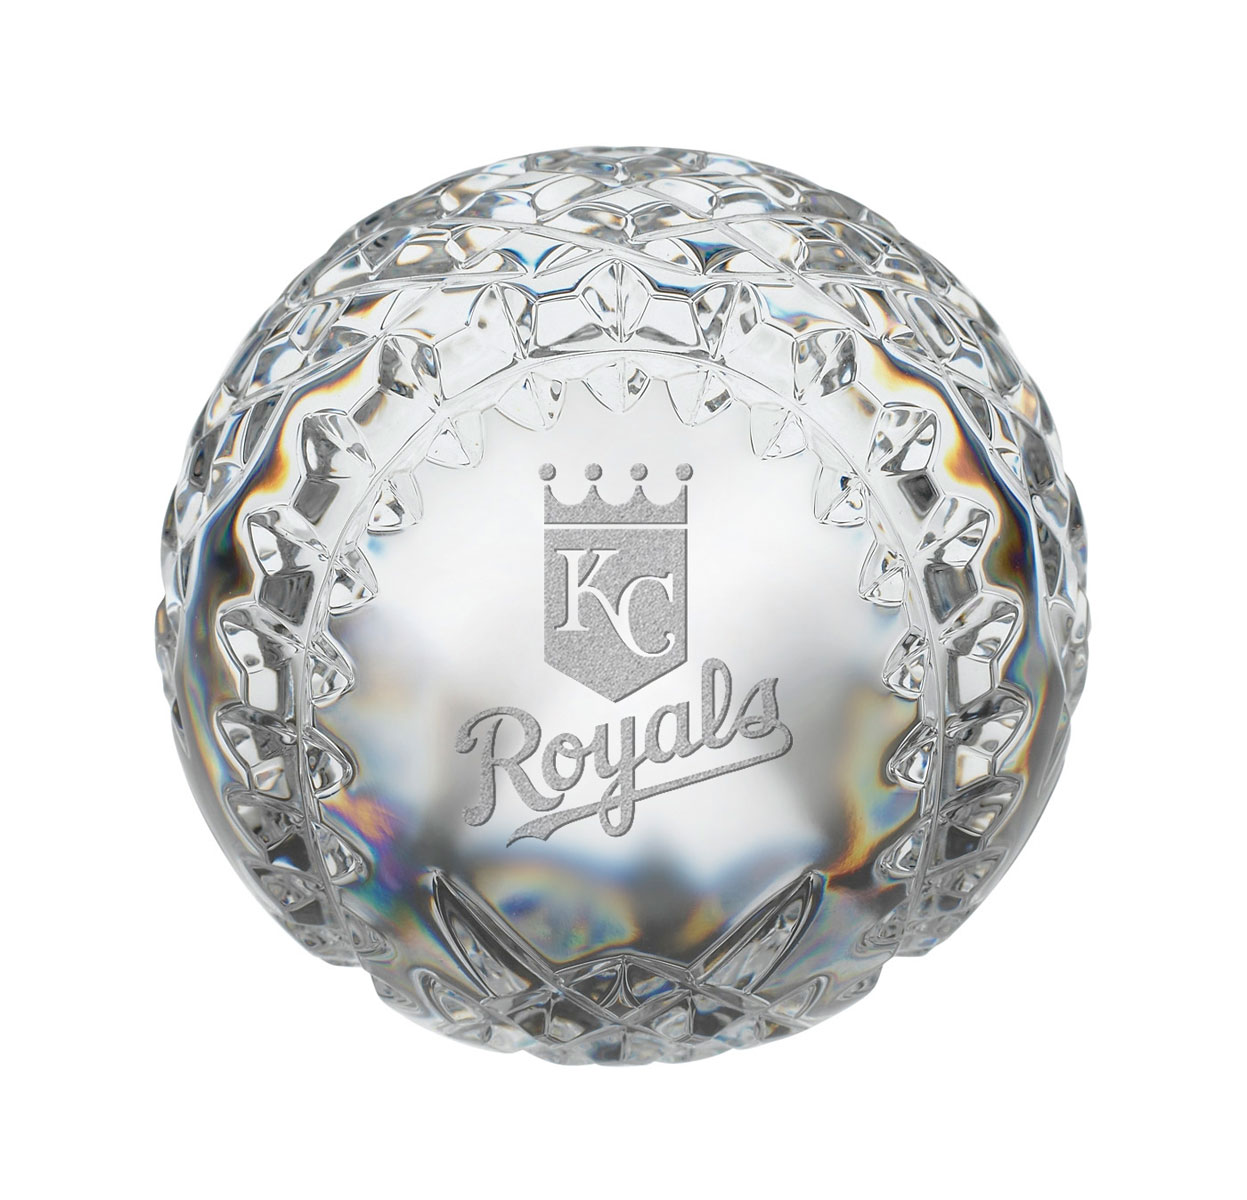 Waterford MLB Kansas City Royals Baseball